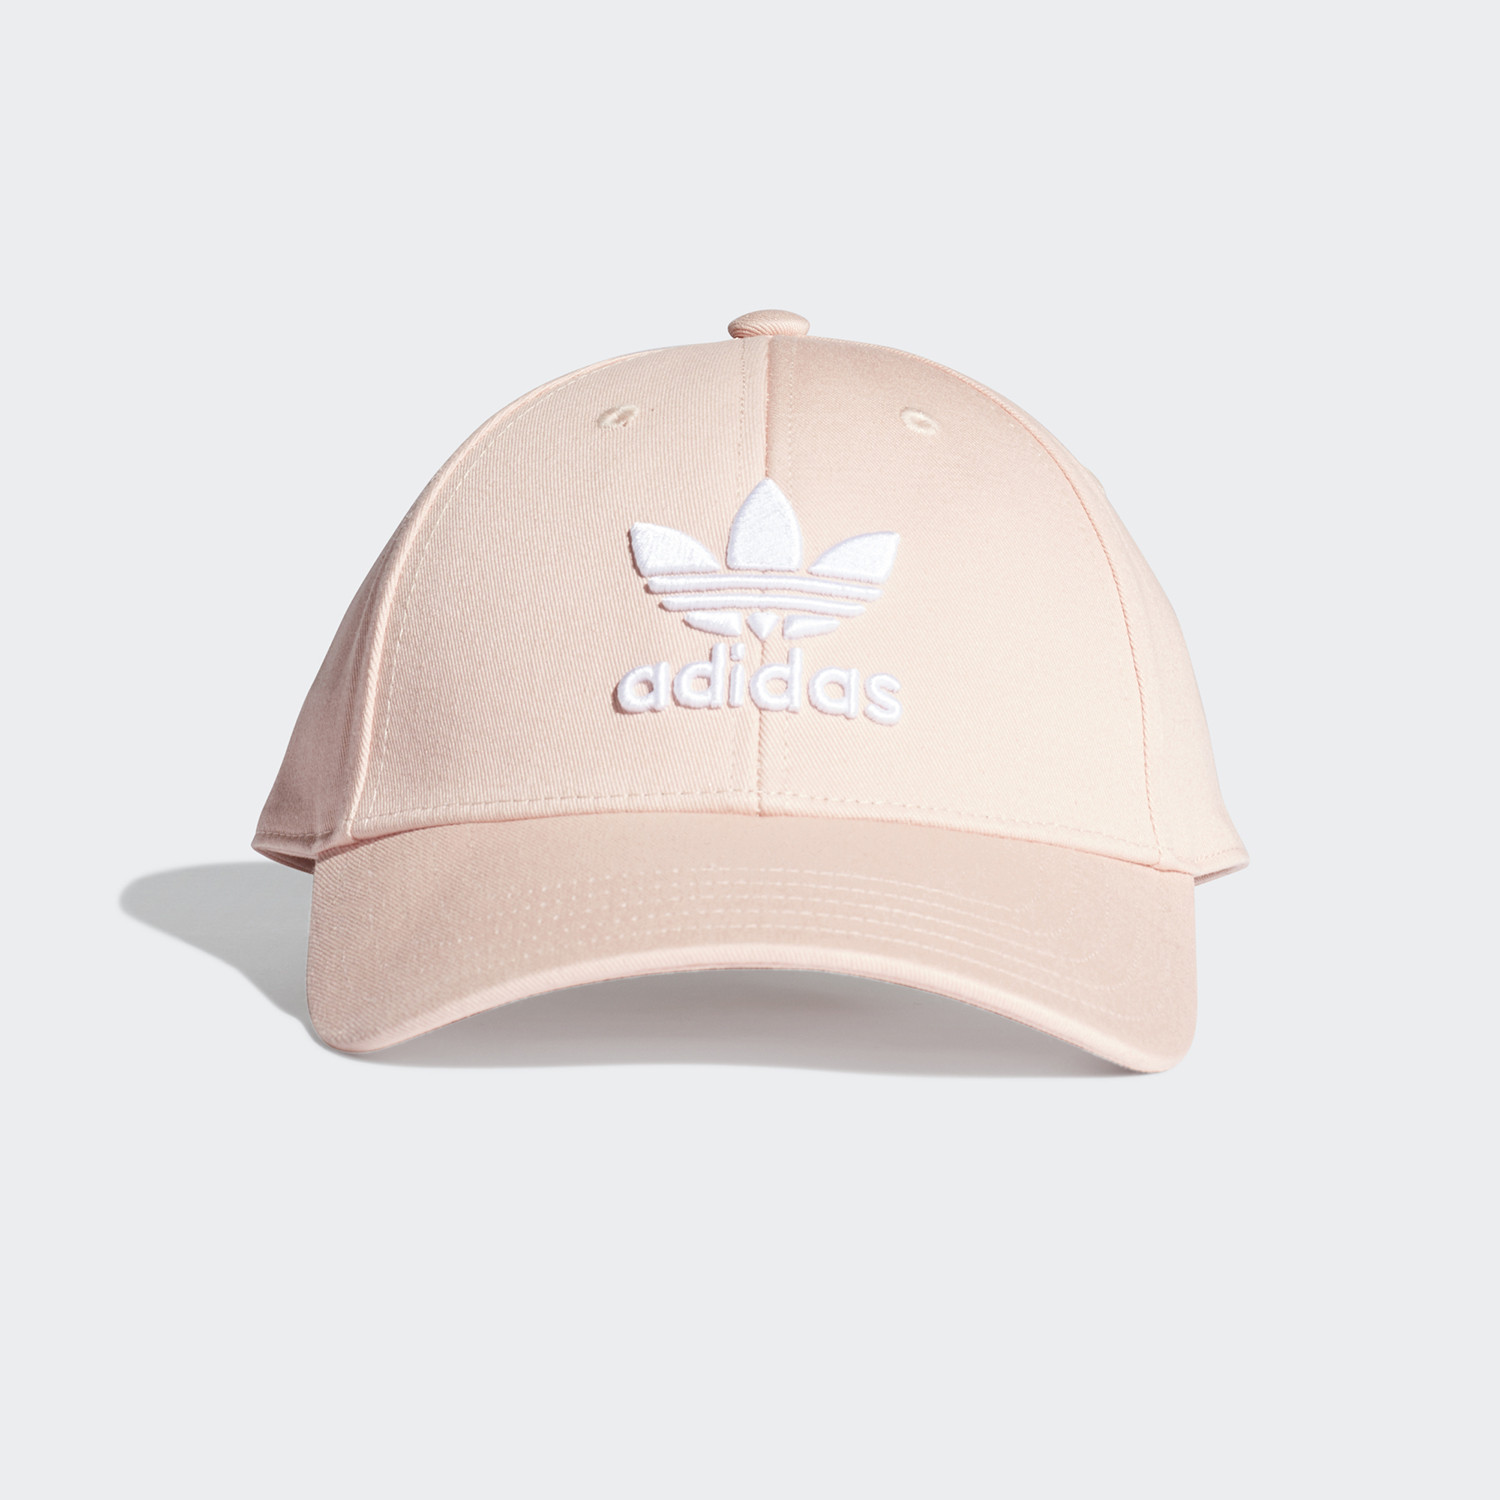 adidas Originals Trefoil Baseball Καπέλο (9000058102_47314)